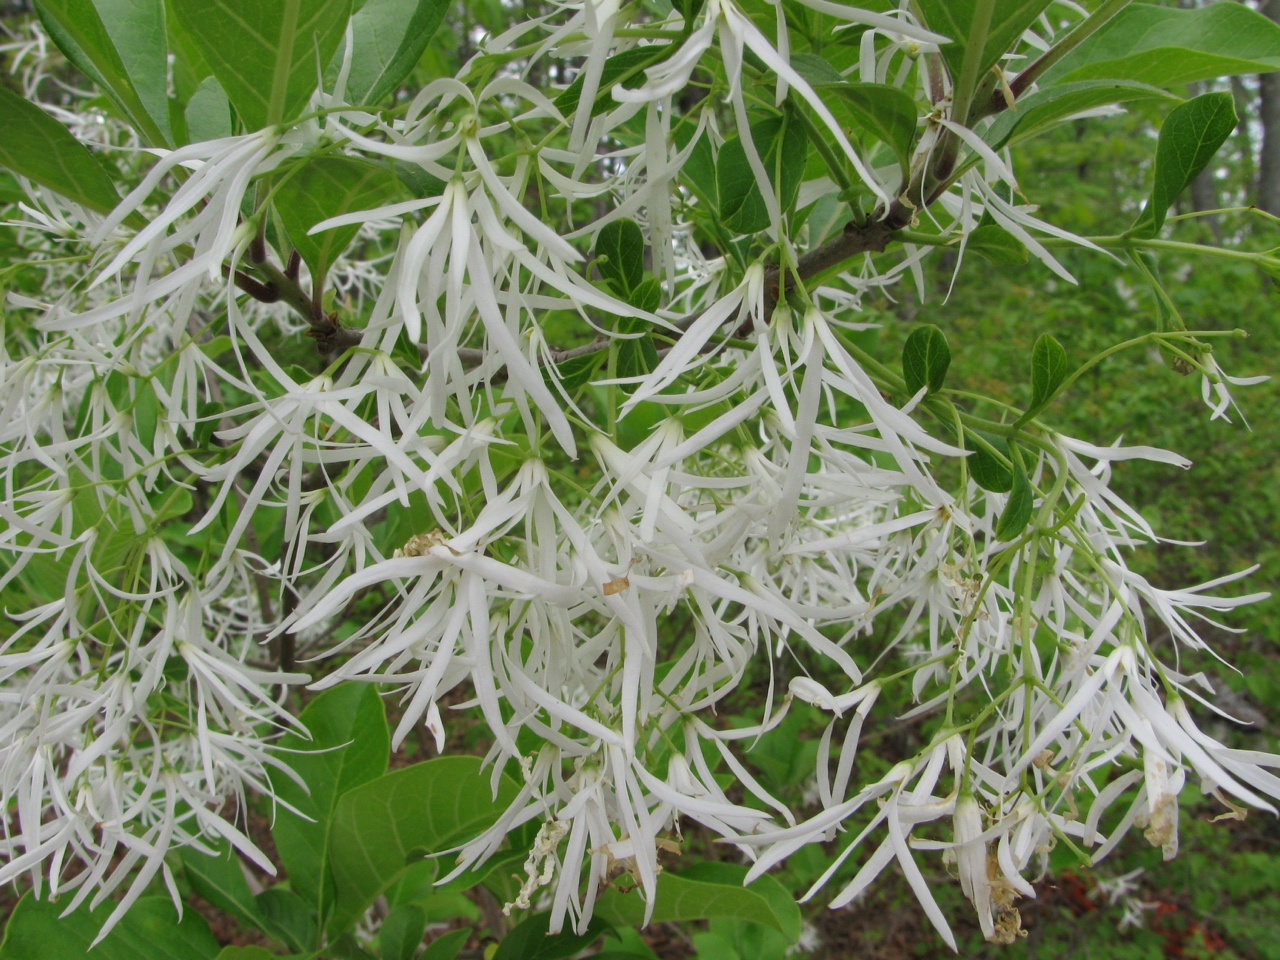 The Scientific Name is Chionanthus virginicus. You will likely hear them called Fringe tree, Old man's beard. This picture shows the Close-up of flowers of Chionanthus virginicus